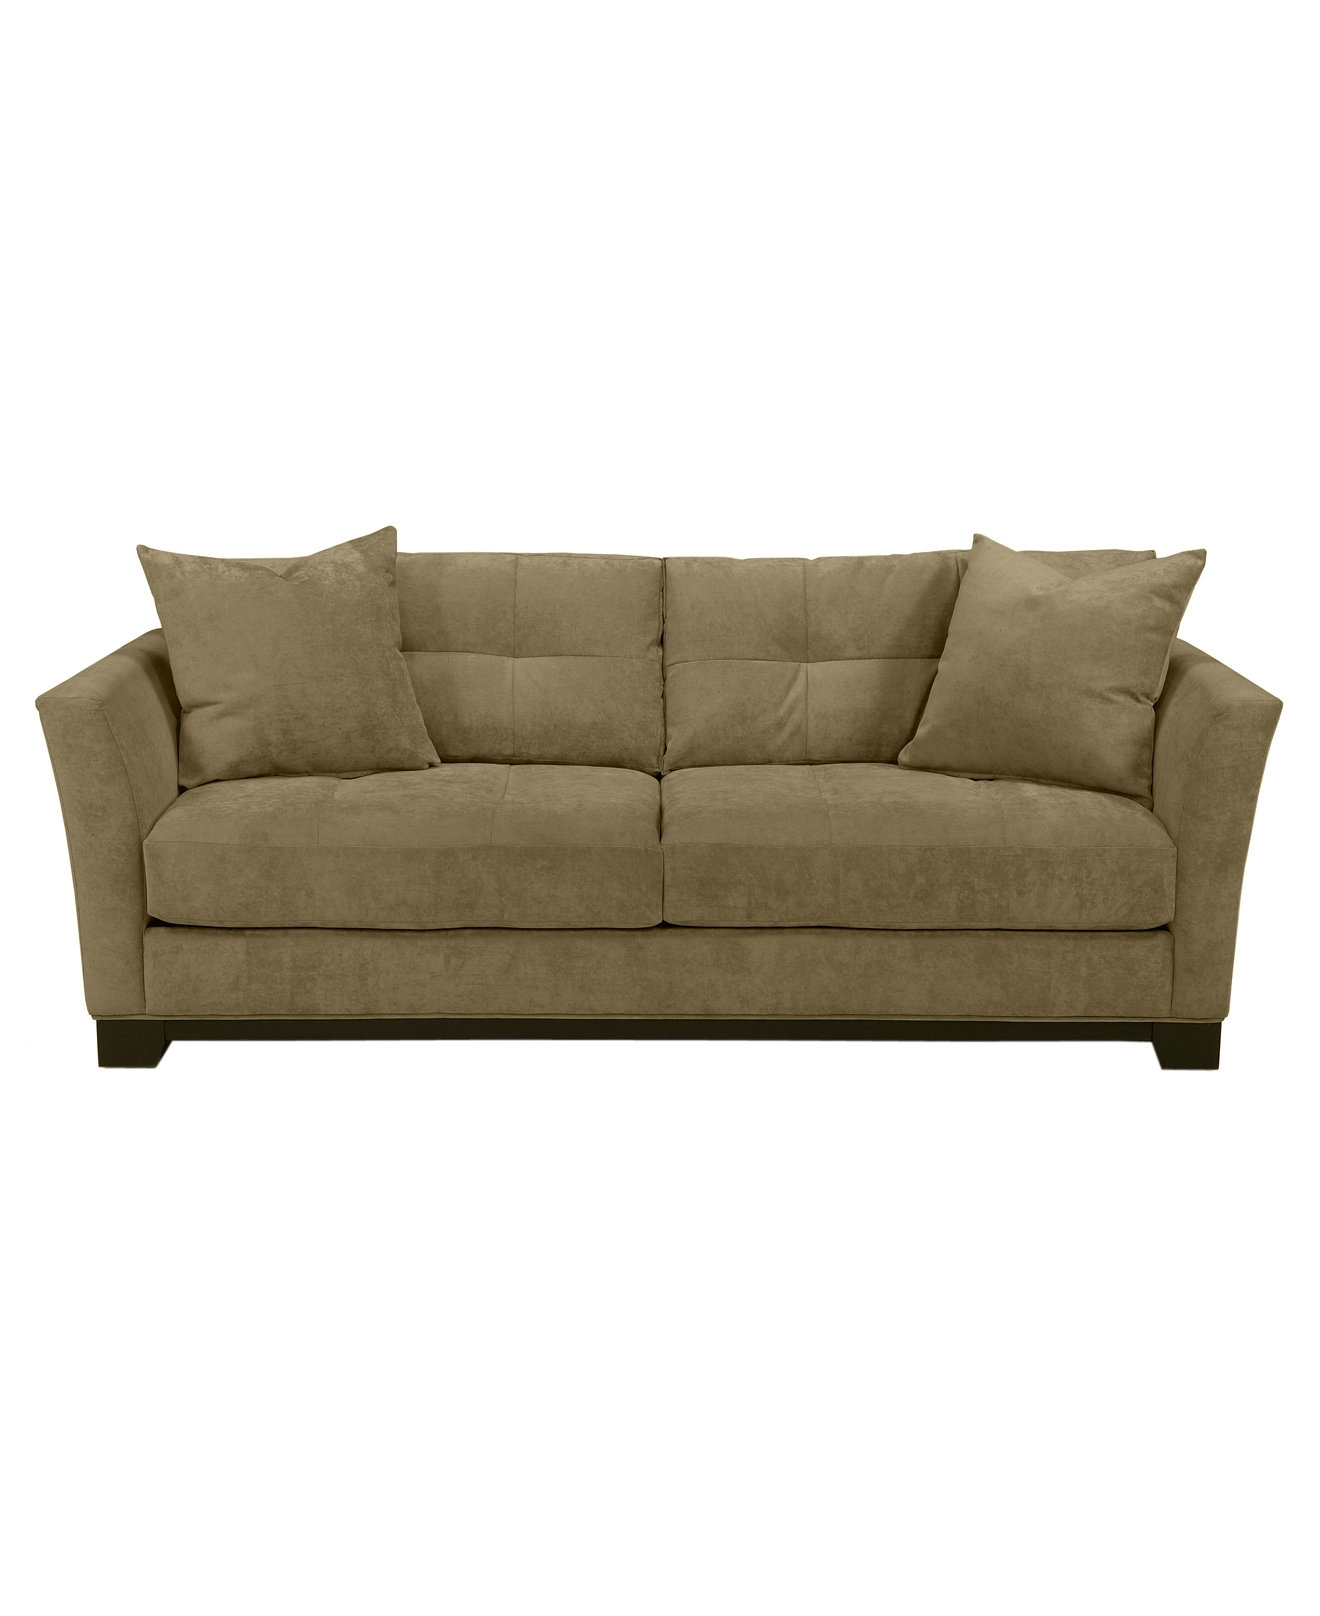 90 Wide Elliot Fabric Microfiber Queen Sleeper Sofa Bed - Couches in Everett Wa Sectional Sofas (Image 1 of 10)